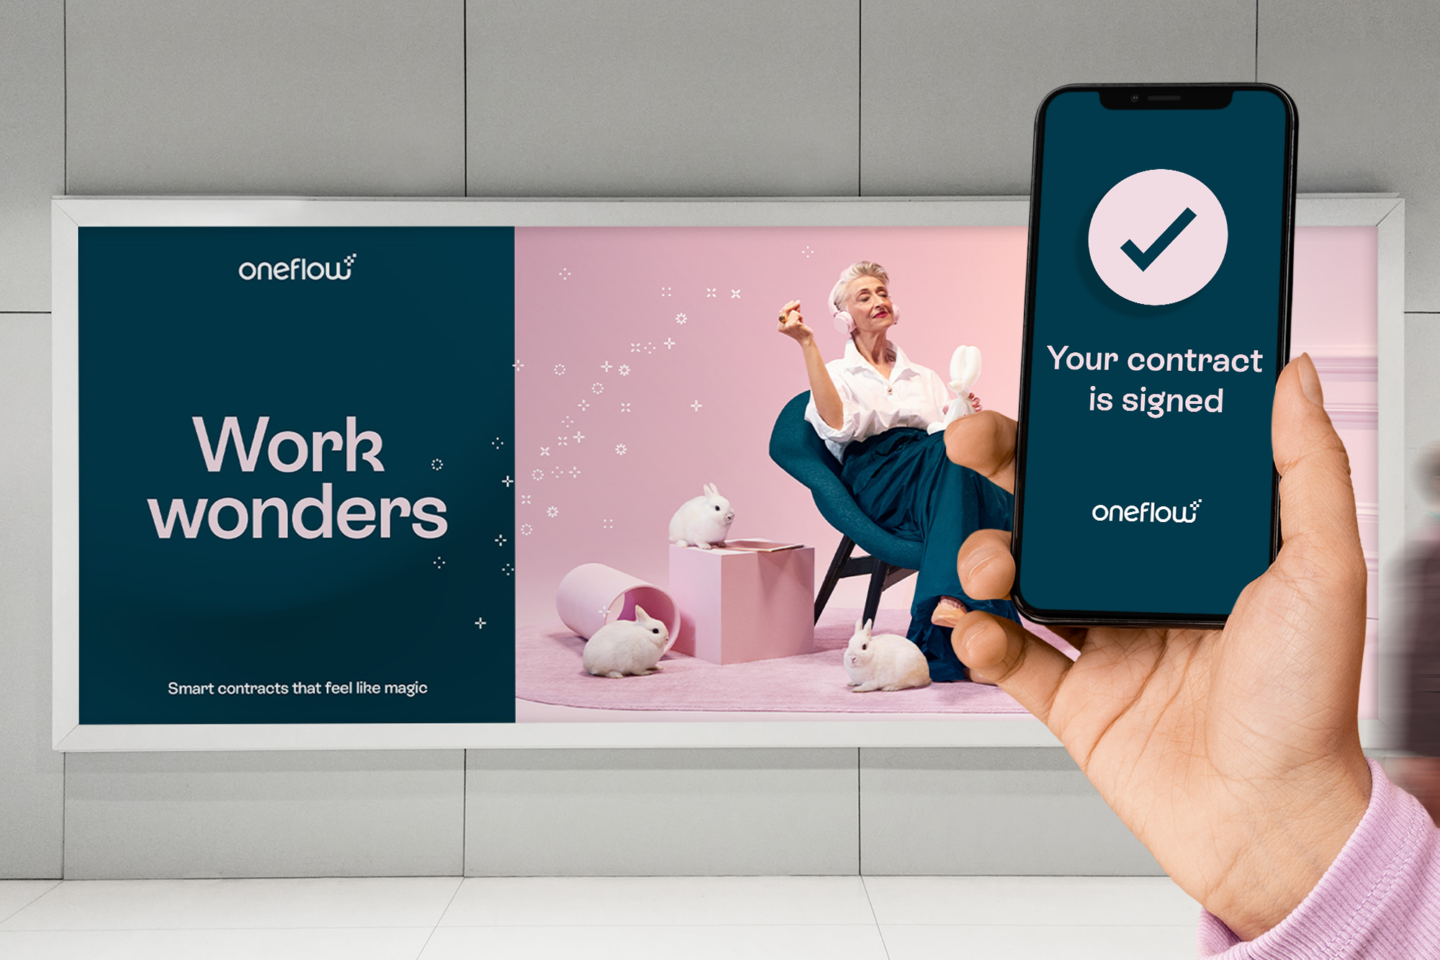 Picture of a hand holding a phone with screen showing that a contract has been signed through Oneflow. The background  showing a subway billboard for Oneflow, symbolising you can sign contracts wherever you are.